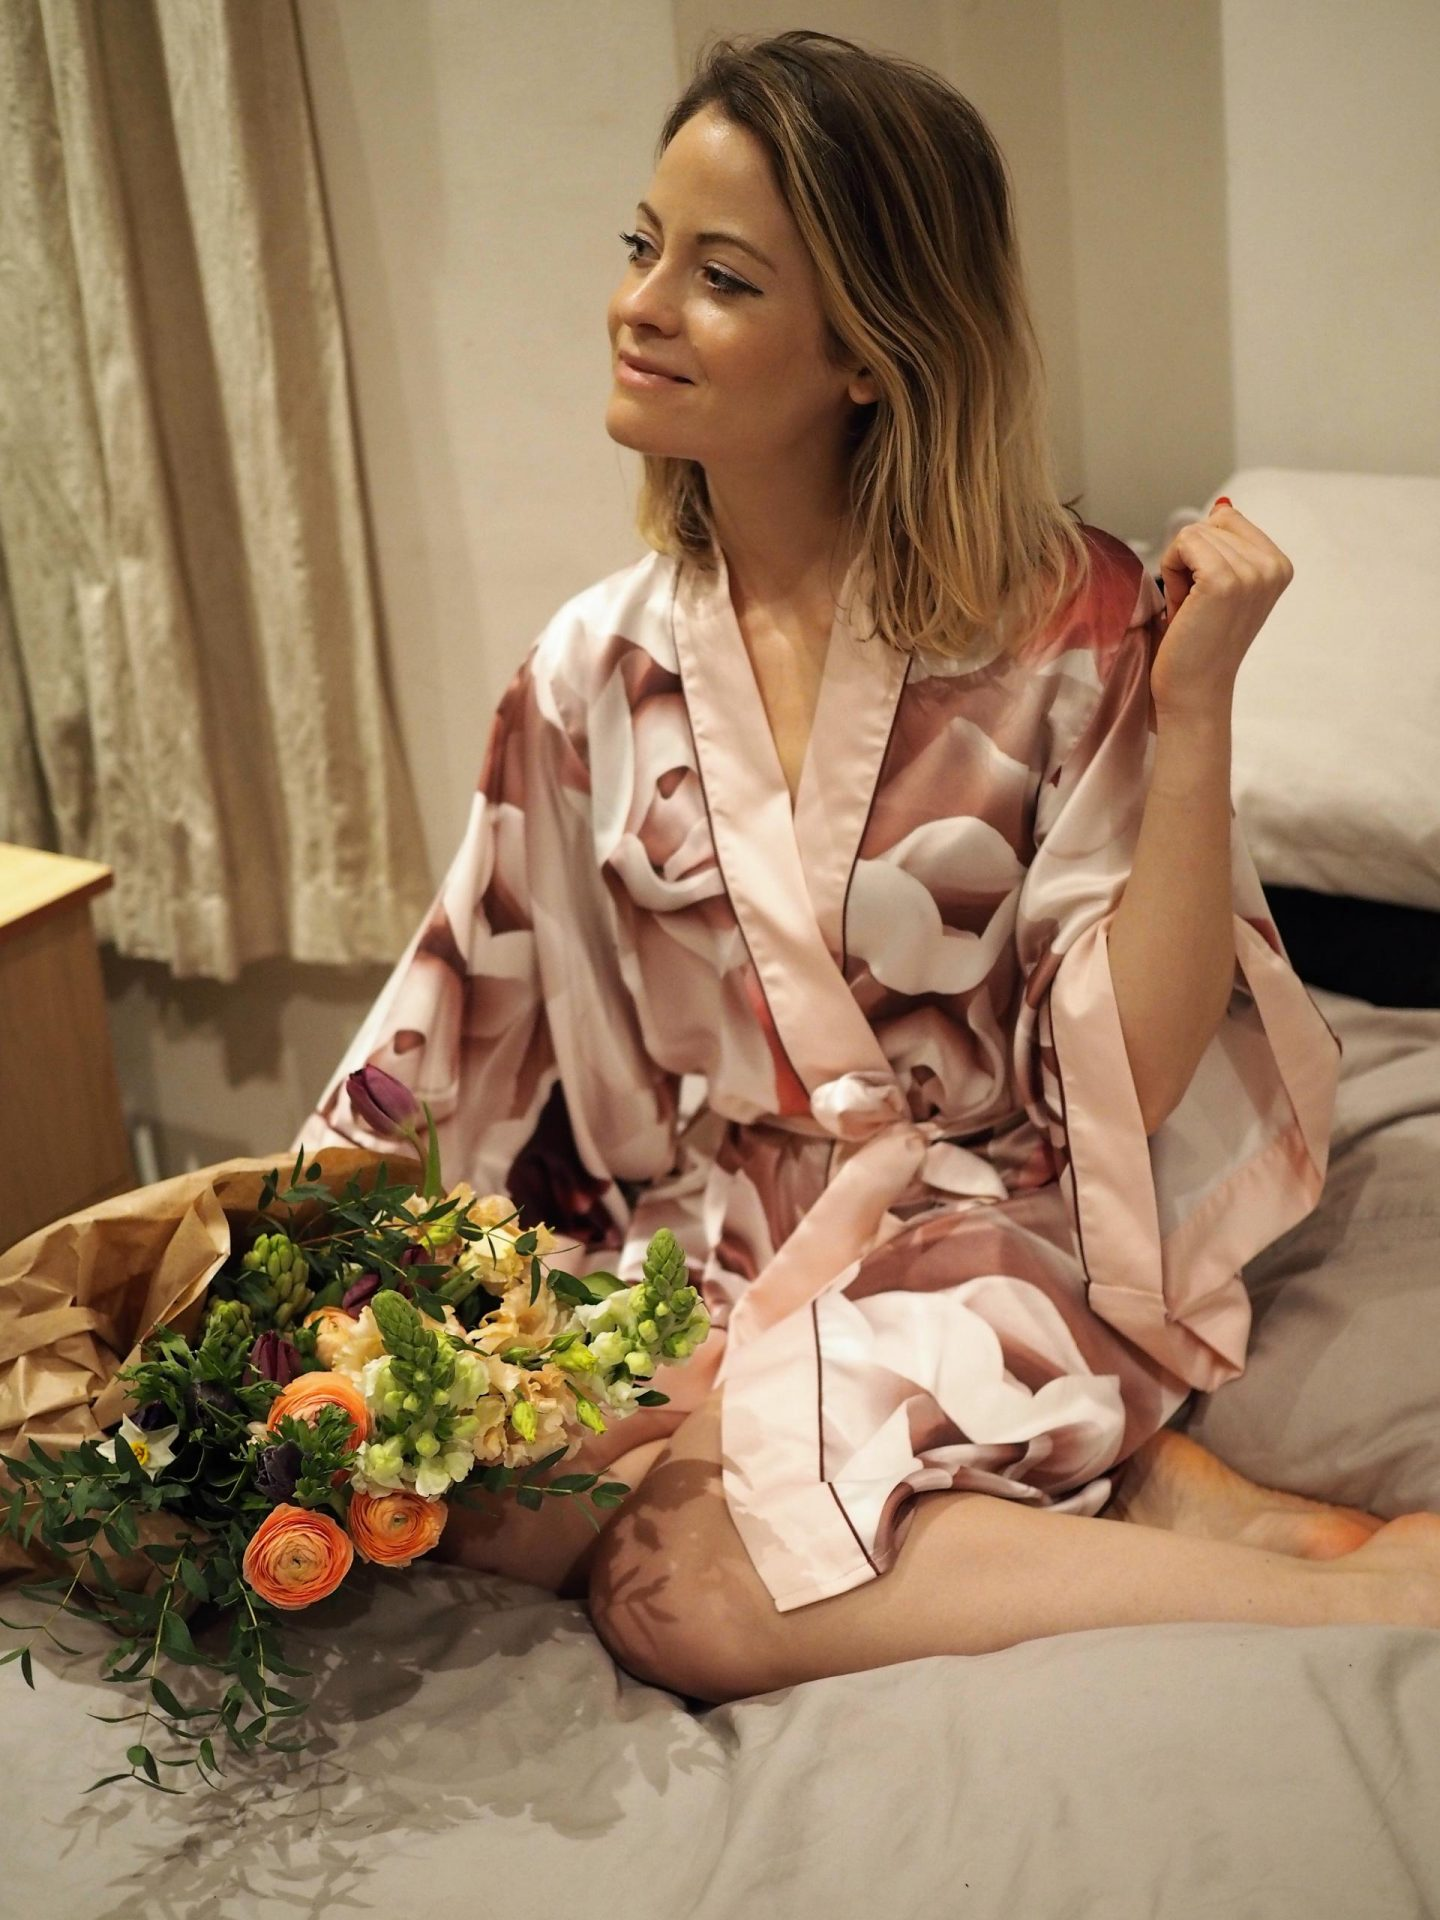 Ted Baker Pink Satin 'Porcelain Rose' Dressing Gown.